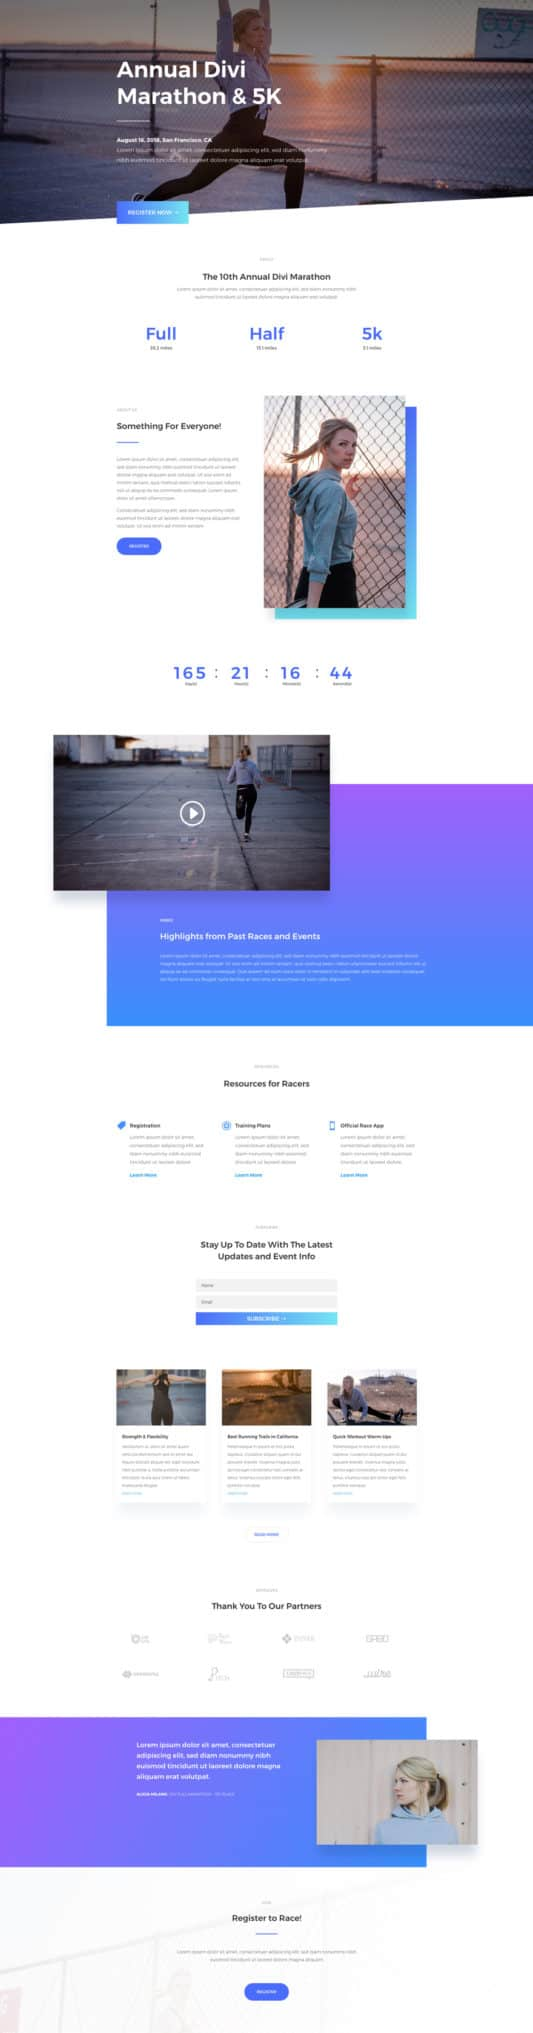 The Marathon Page Style: Homepage Design 1